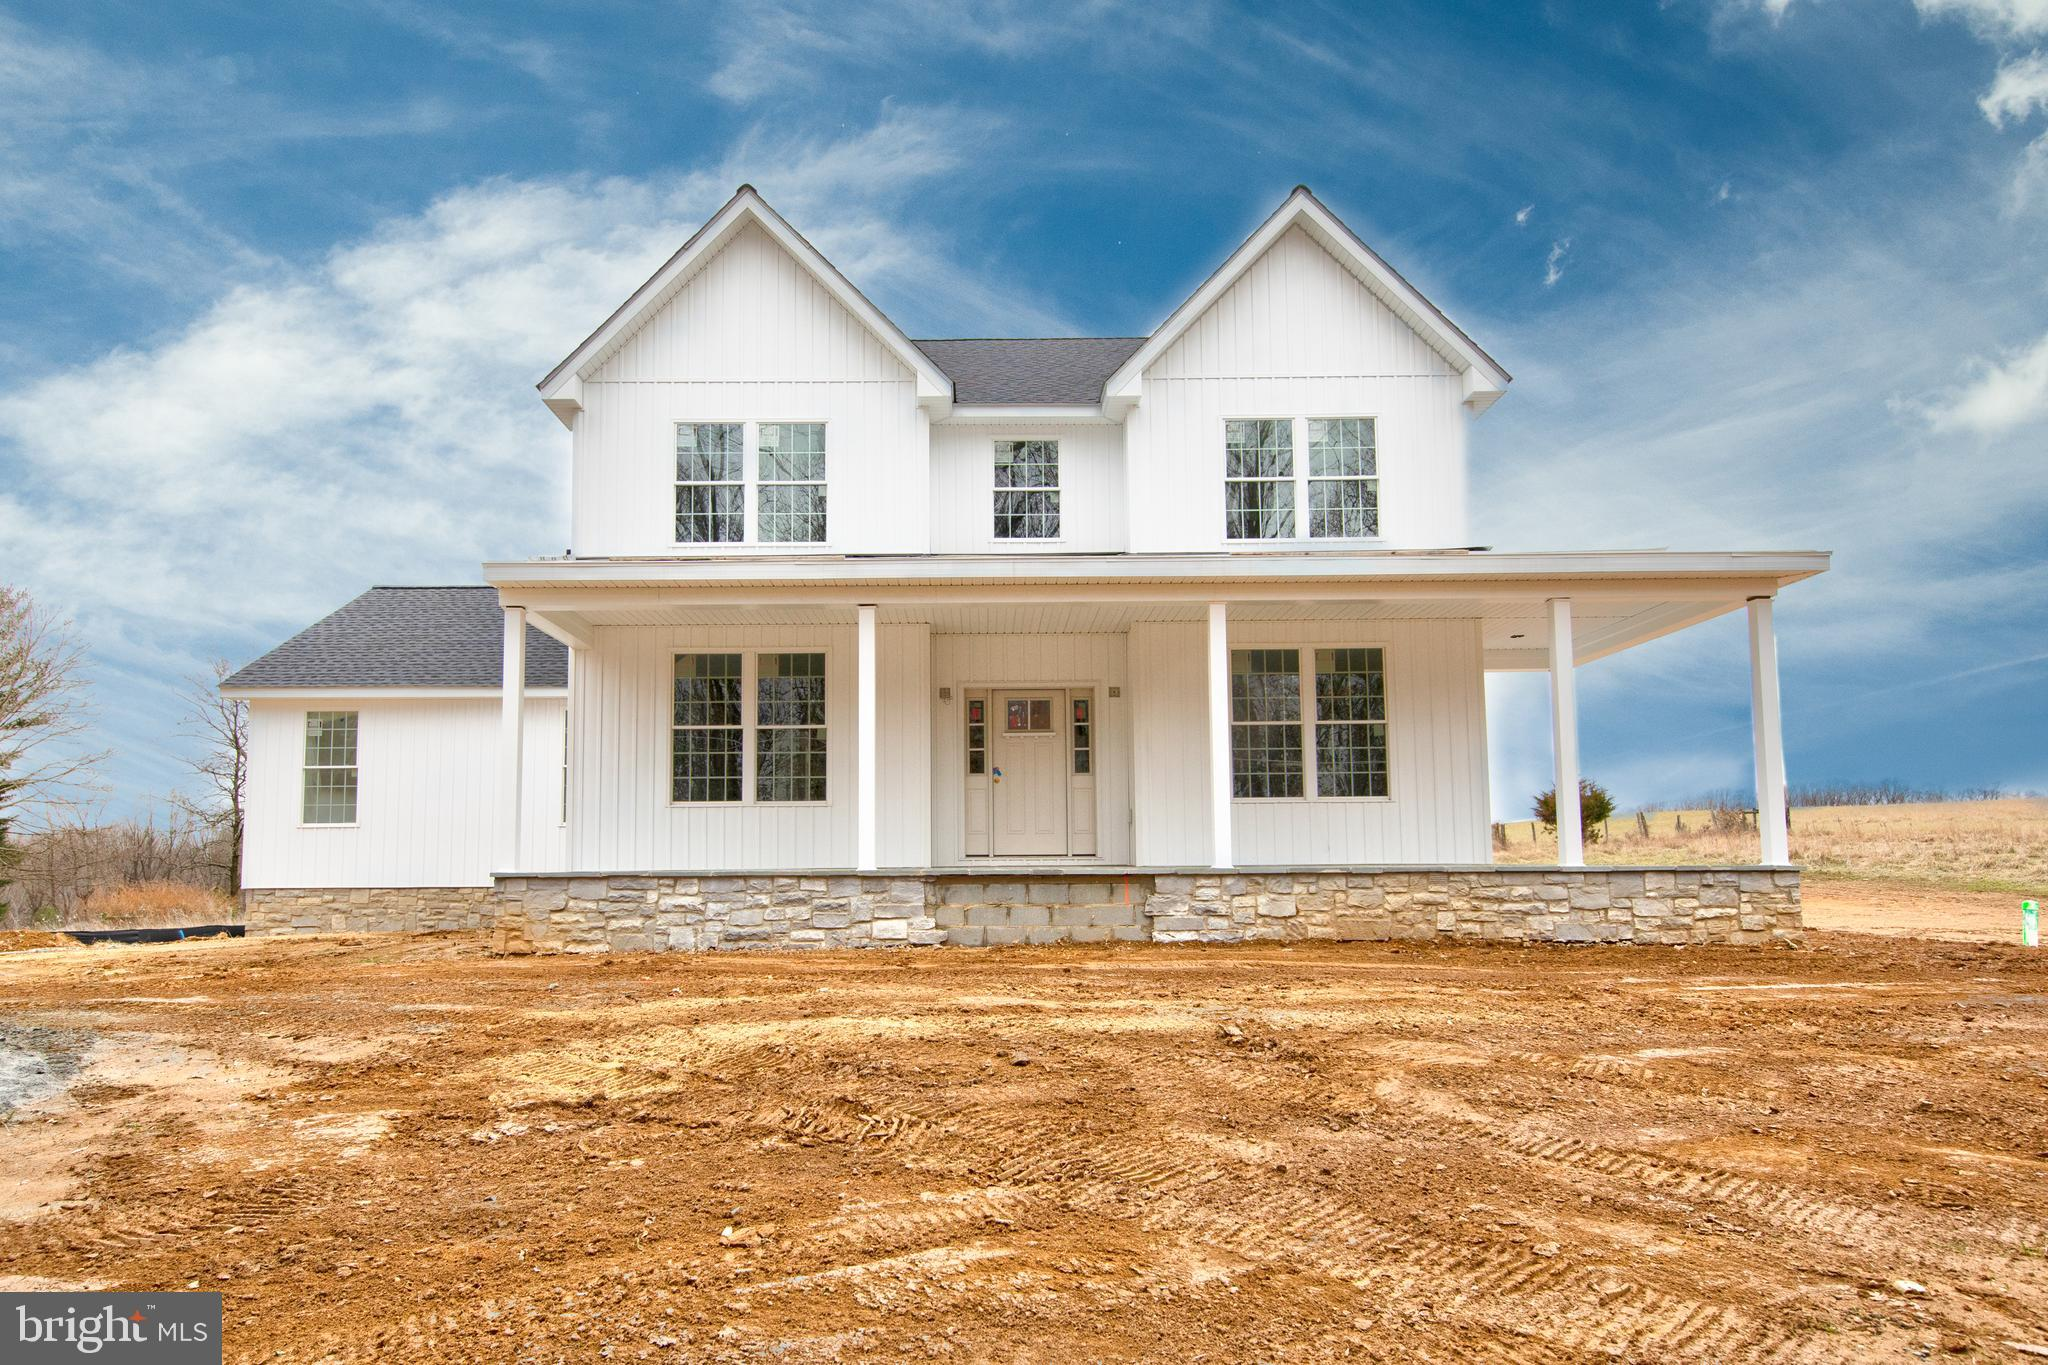 ANOTHER BEAUTIFUL HOME IS CURRENTLY UNDER CONSTRUCTION BY PINNACLE DESIGN*Act now and you could move